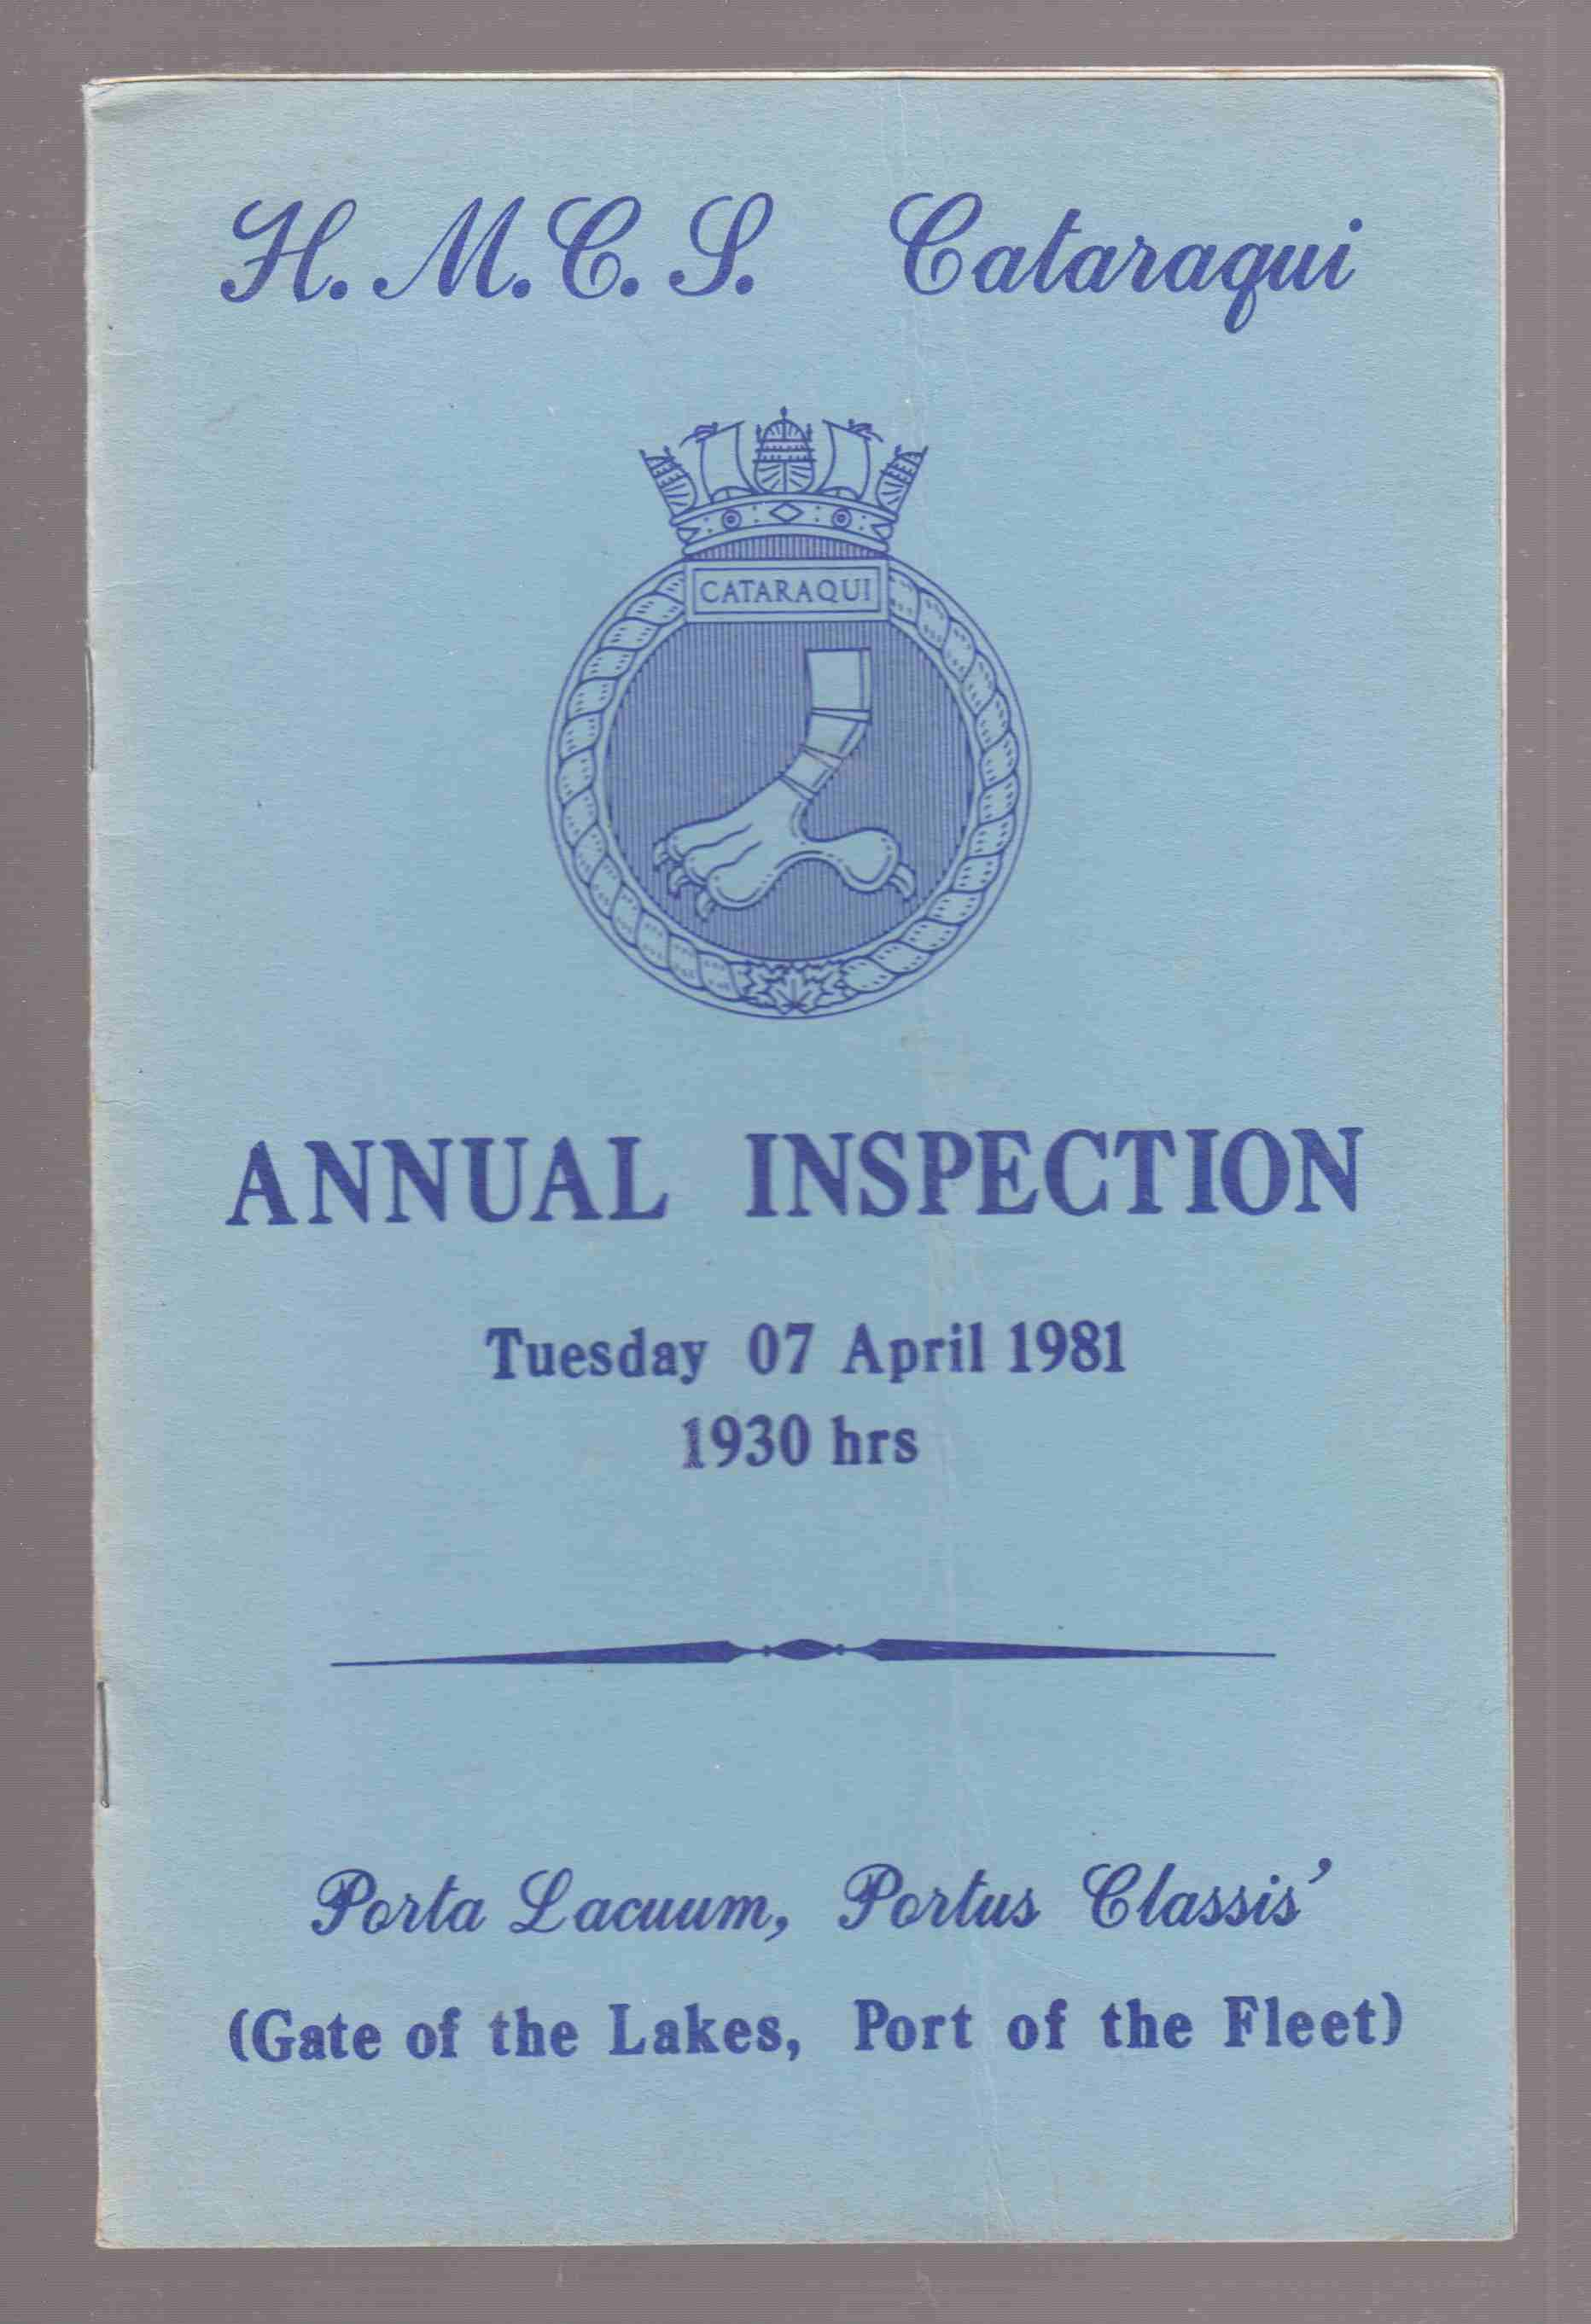 Image for H. M. C. S. Cataraqui Annual Inspection Tuesday 07 April 1981